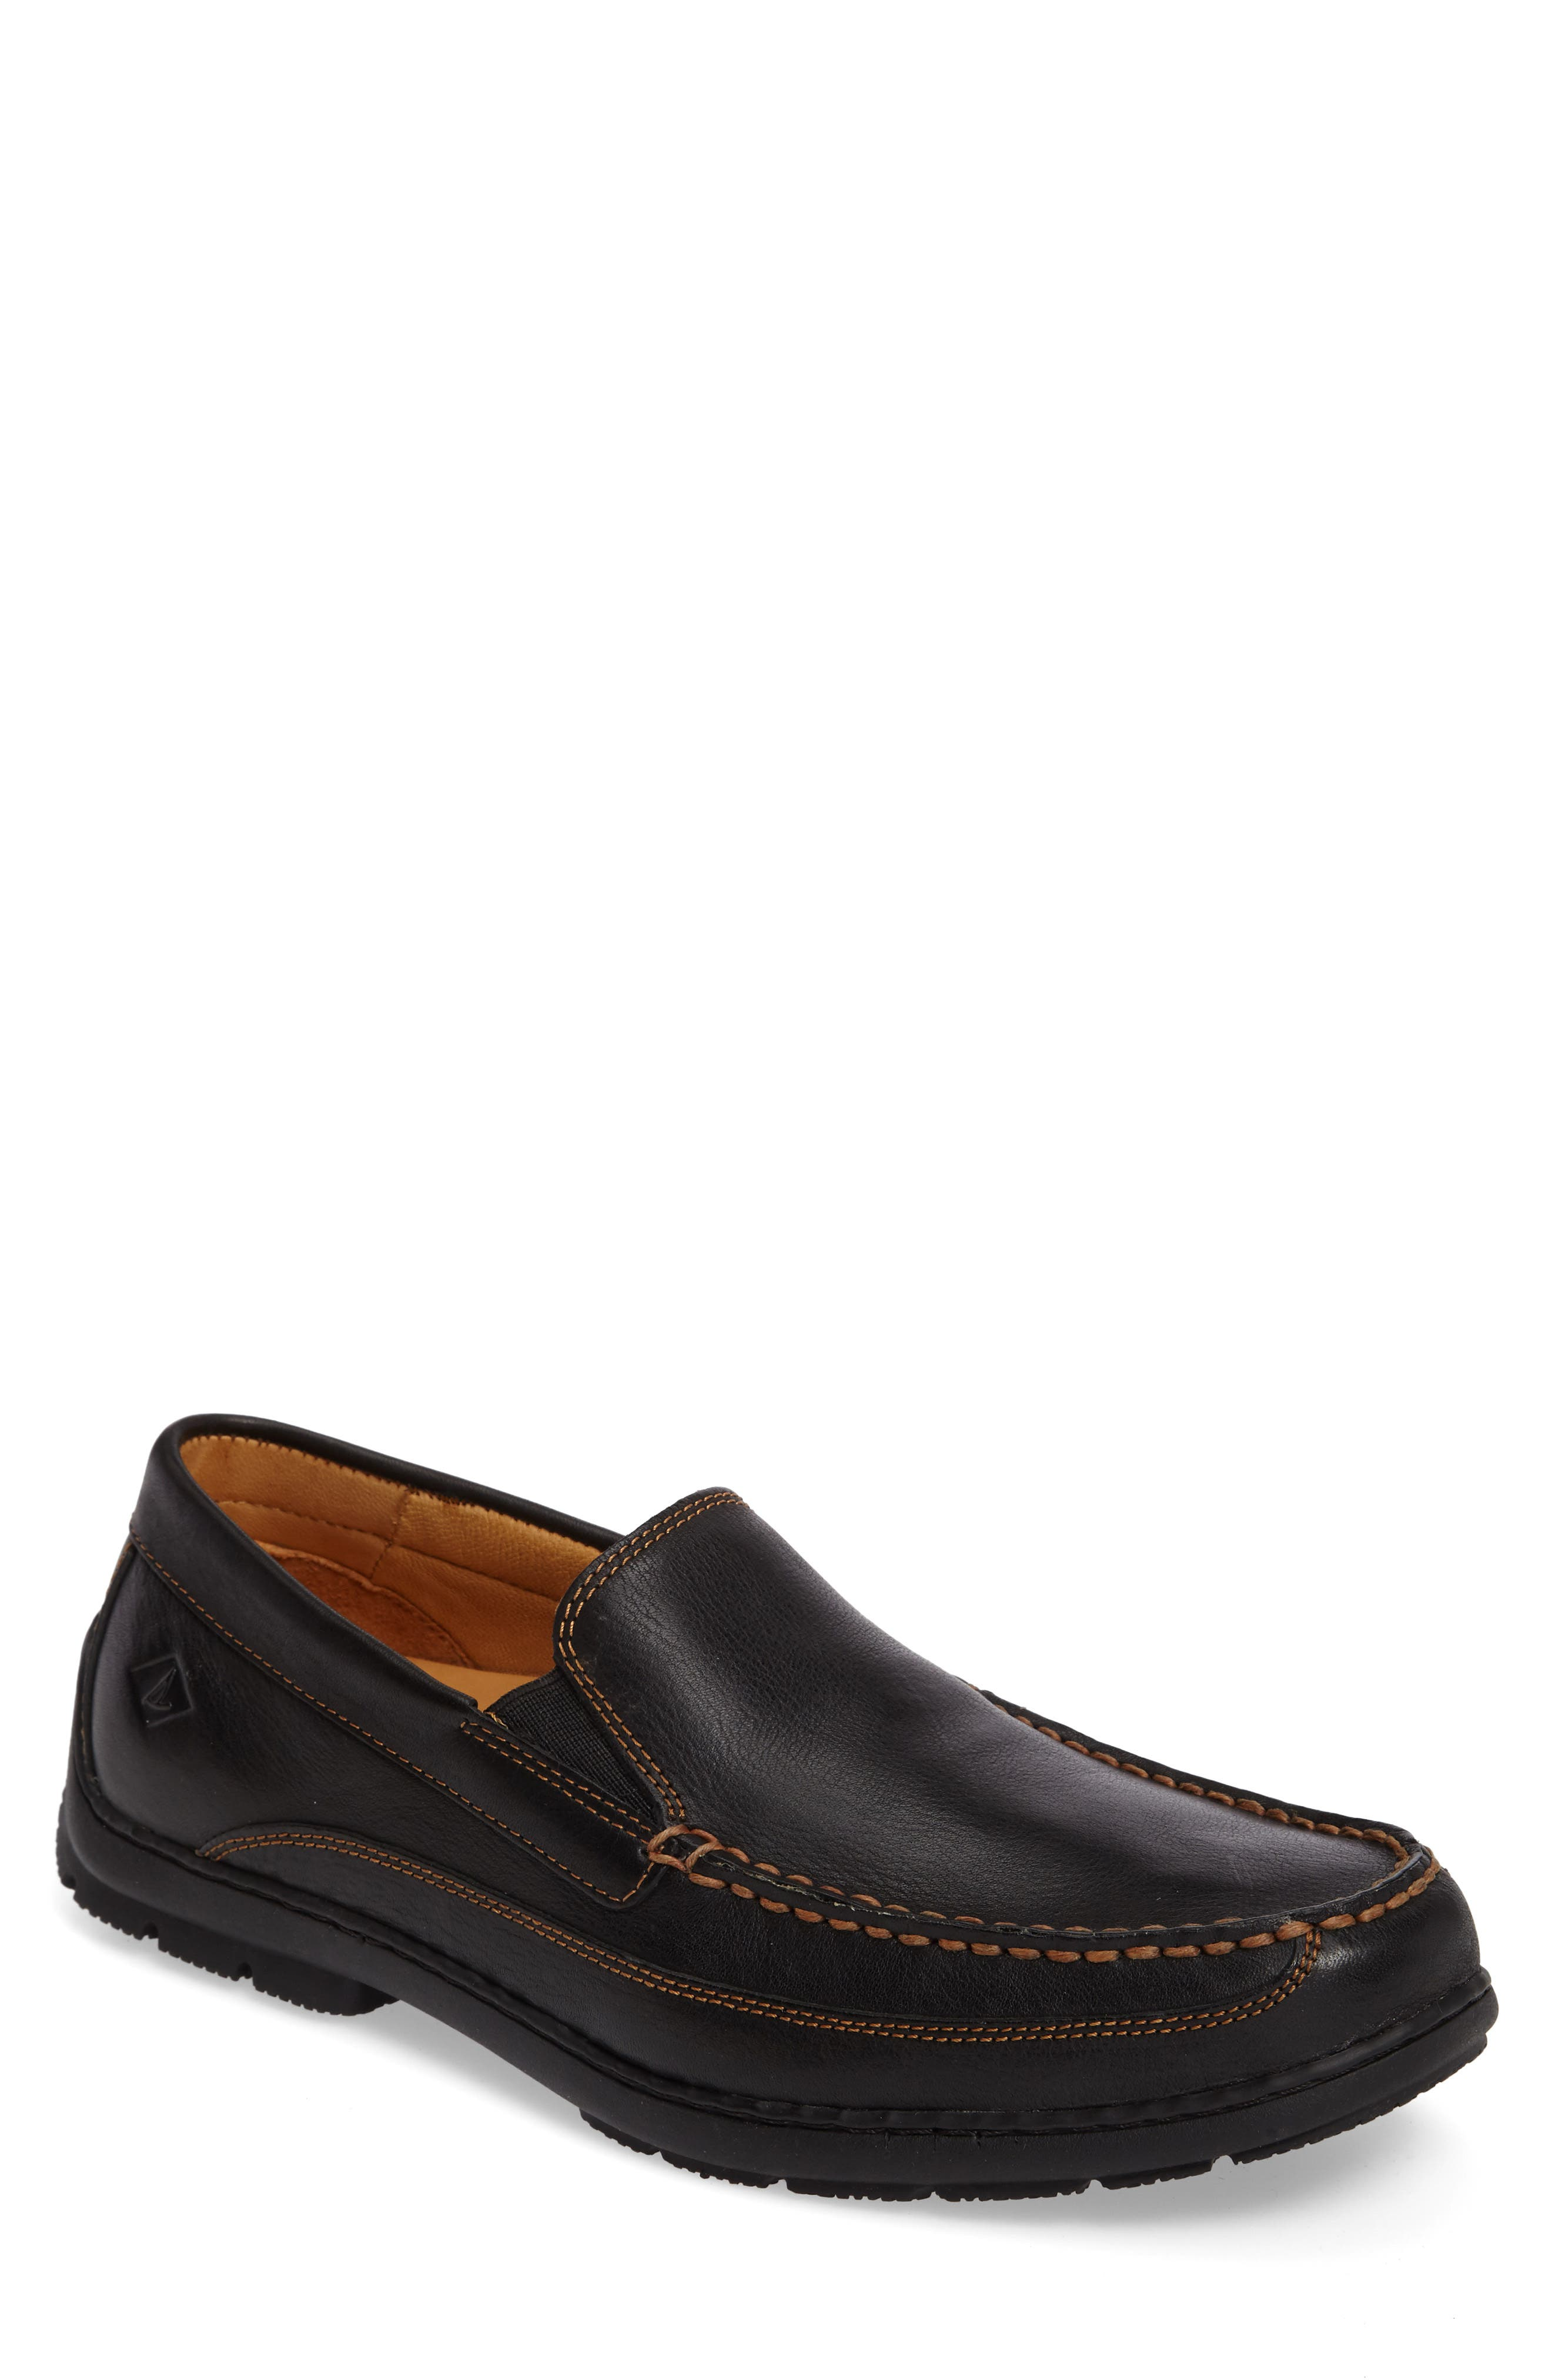 Gold Cup Loafer,                         Main,                         color, 001